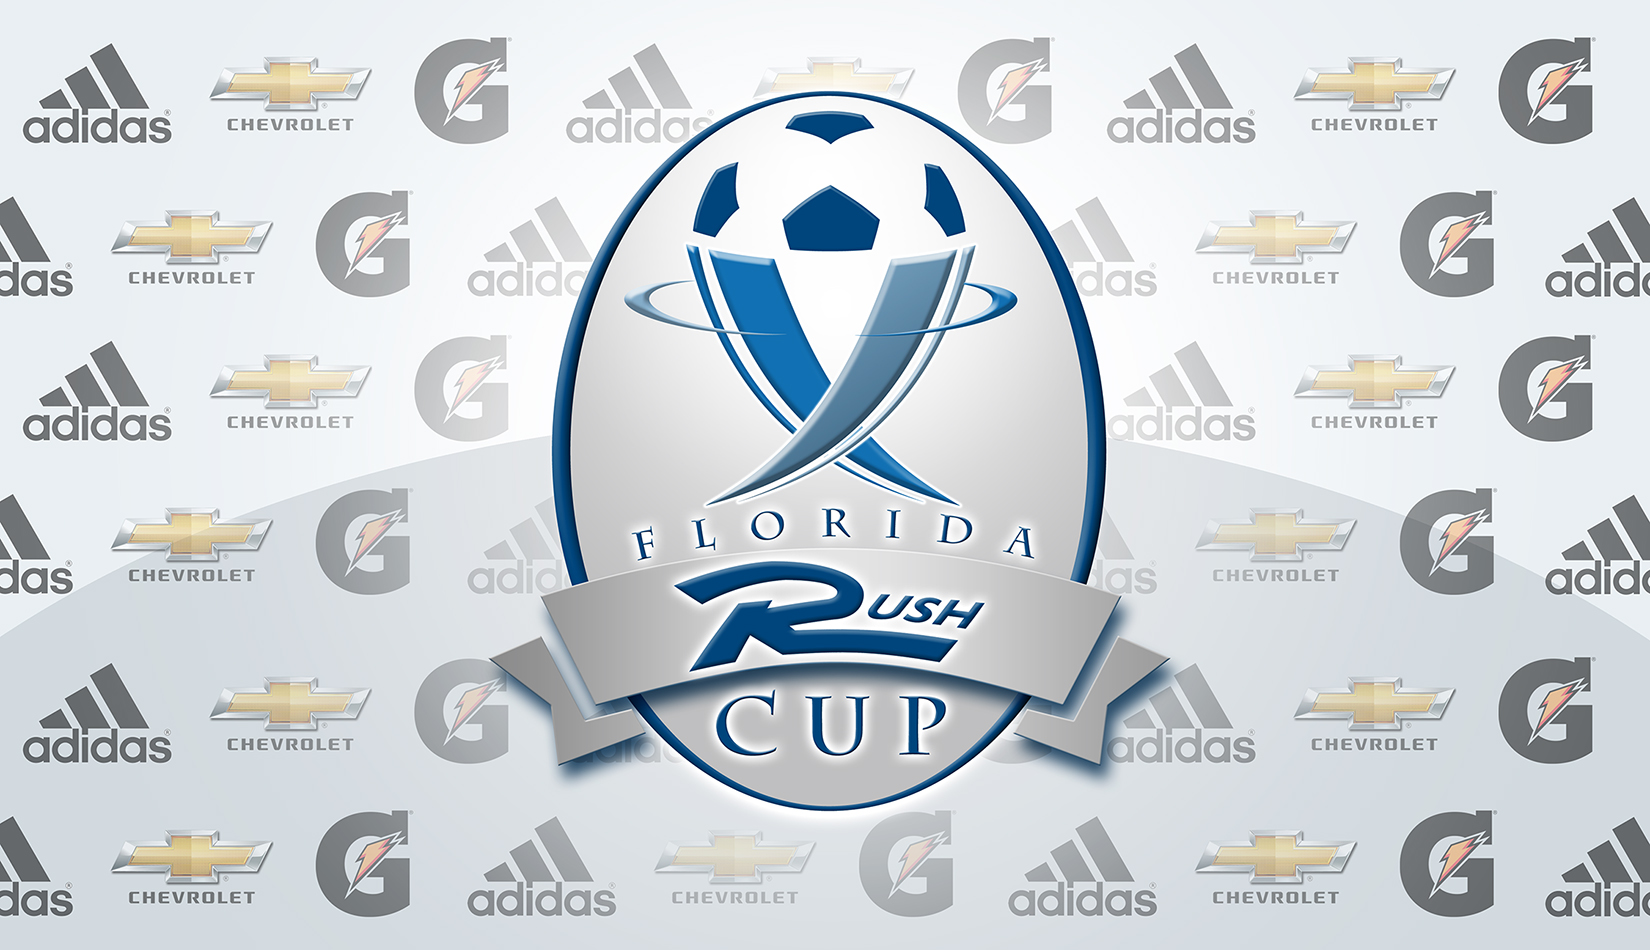 2017 Florida Rush Cup, Presented by Chevrolet